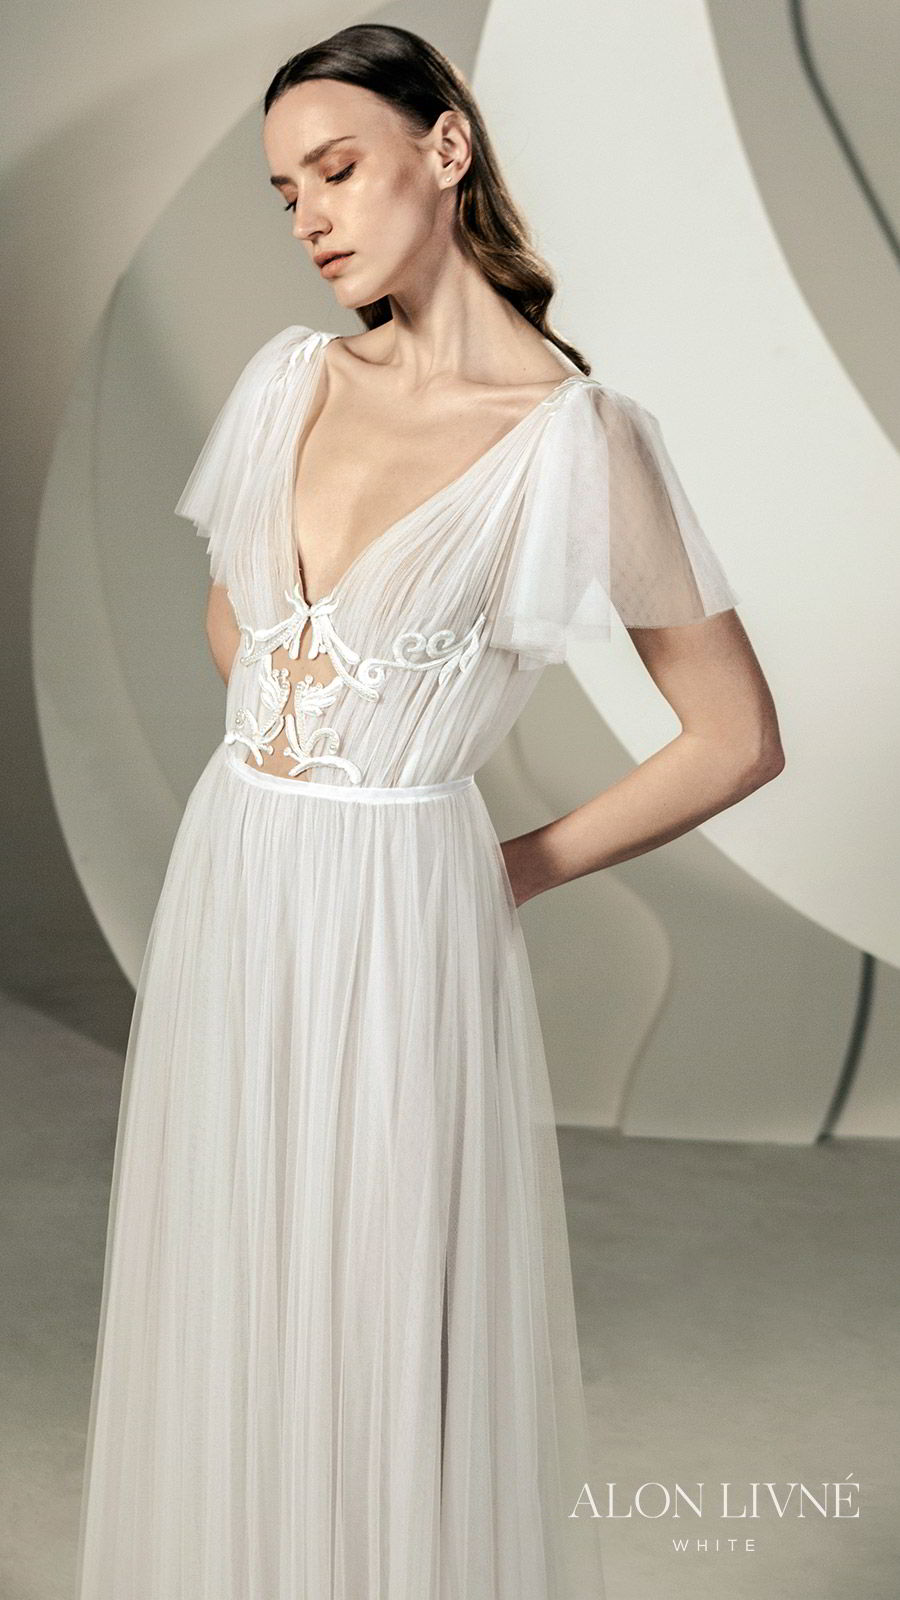 alon livne white spring 2020 bridal illusion short flutter sleeves deep v neckline cutout ruched bodice a line ball gown wedding dress (shane) romantic boho chic sv